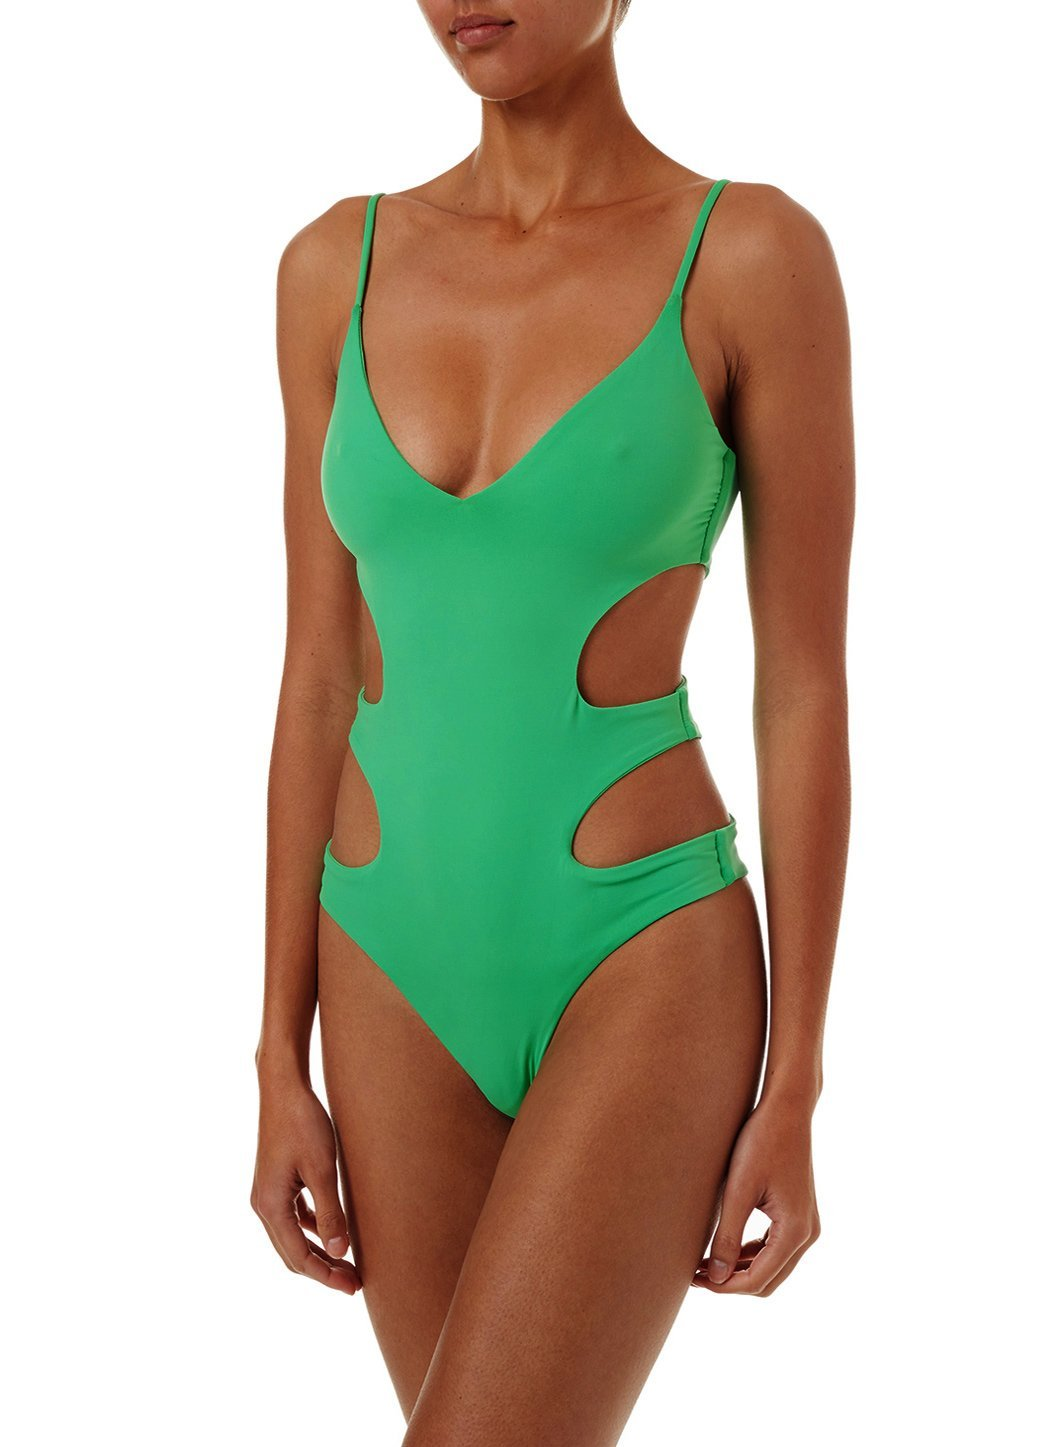 santorini green overtheshoulder cutout onepiece swimsuit 2019 F